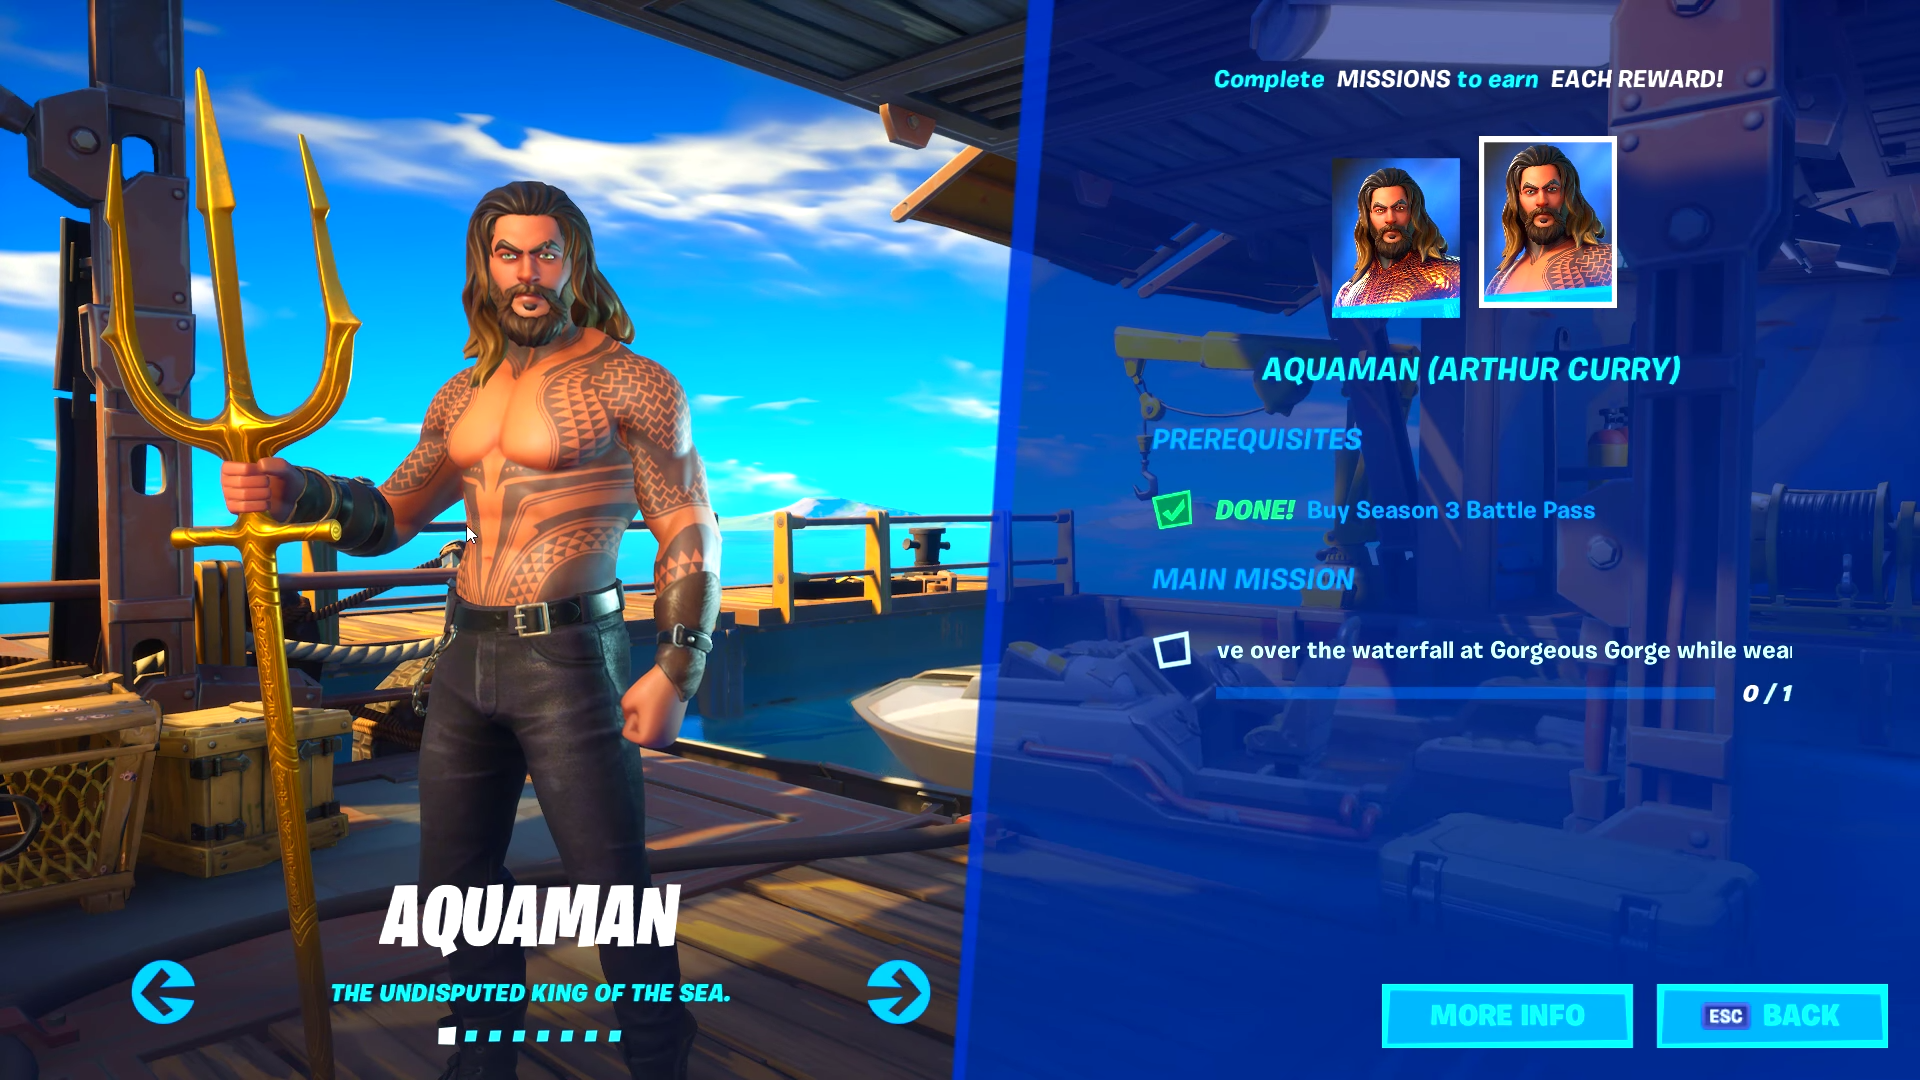 A look at the new Aquaman skin and some of the challenges you can complete in the new Battle Pass.